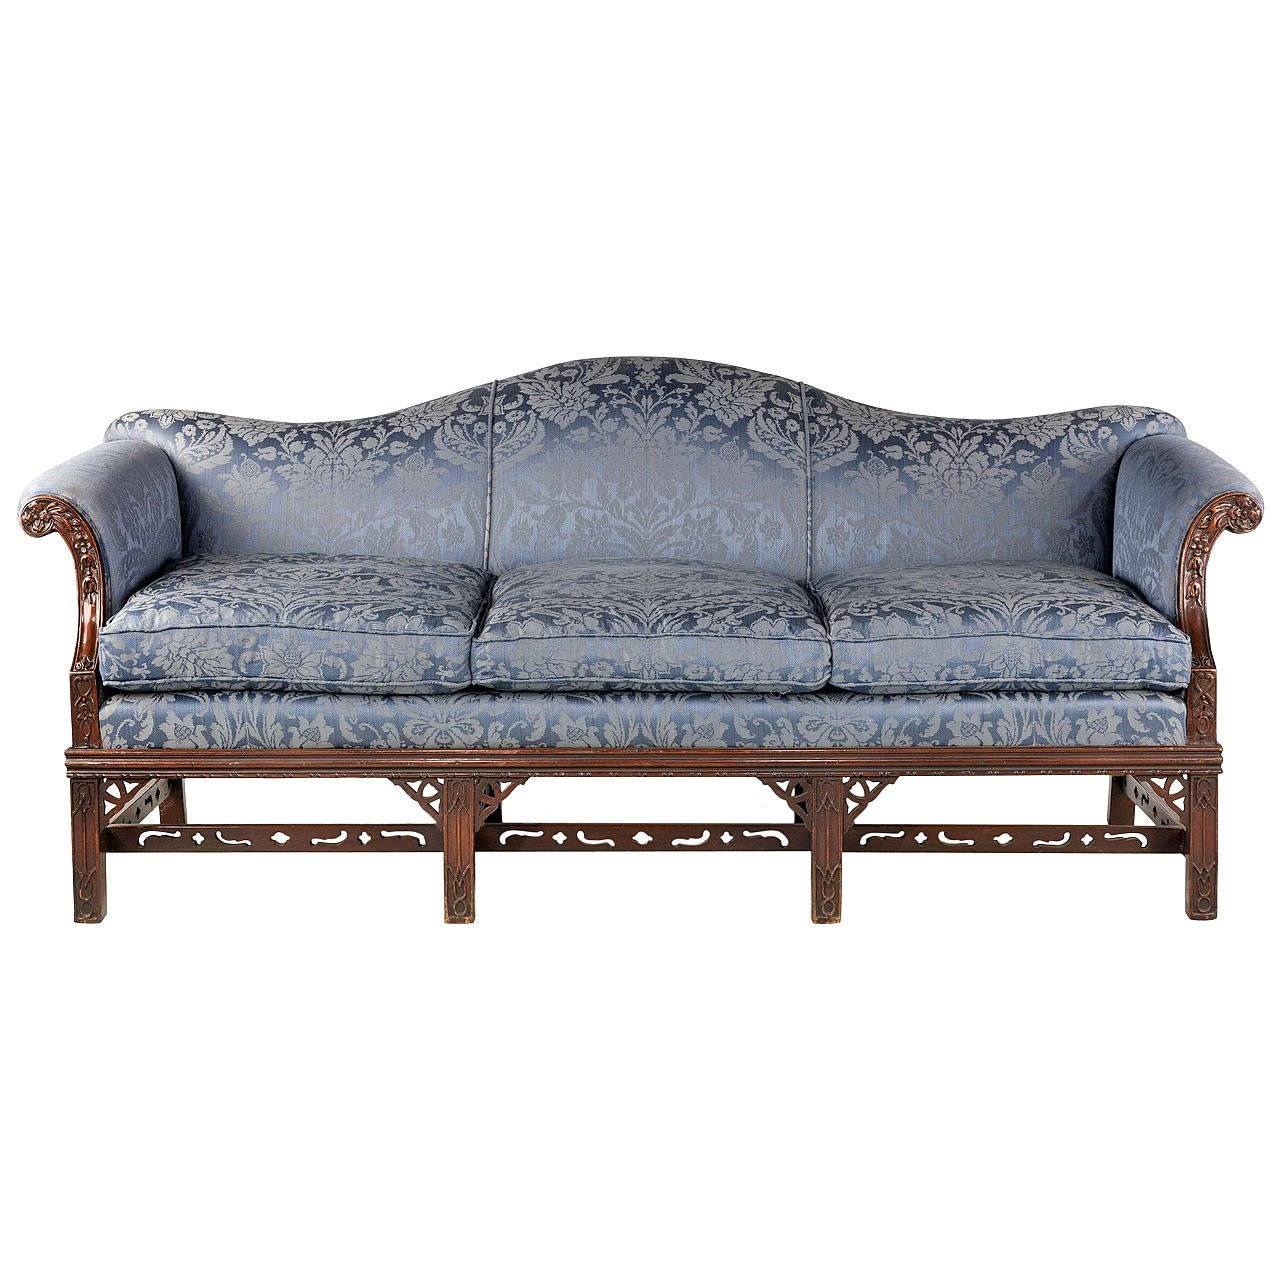 Chippendale Style Mahogany Framed Camel Back Sofa At 1stdibs